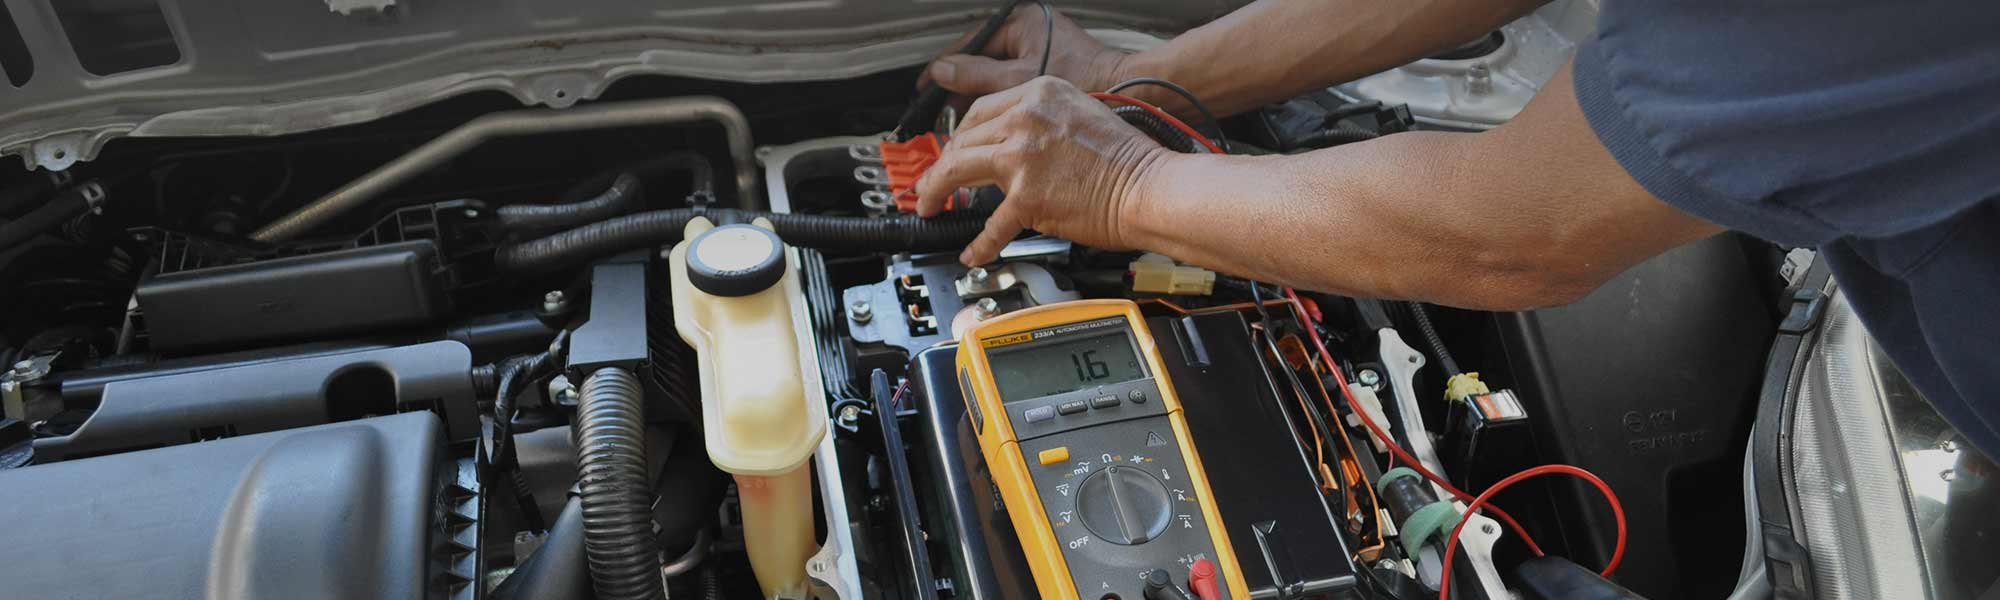 image of mechanic repairing hybrid car motor